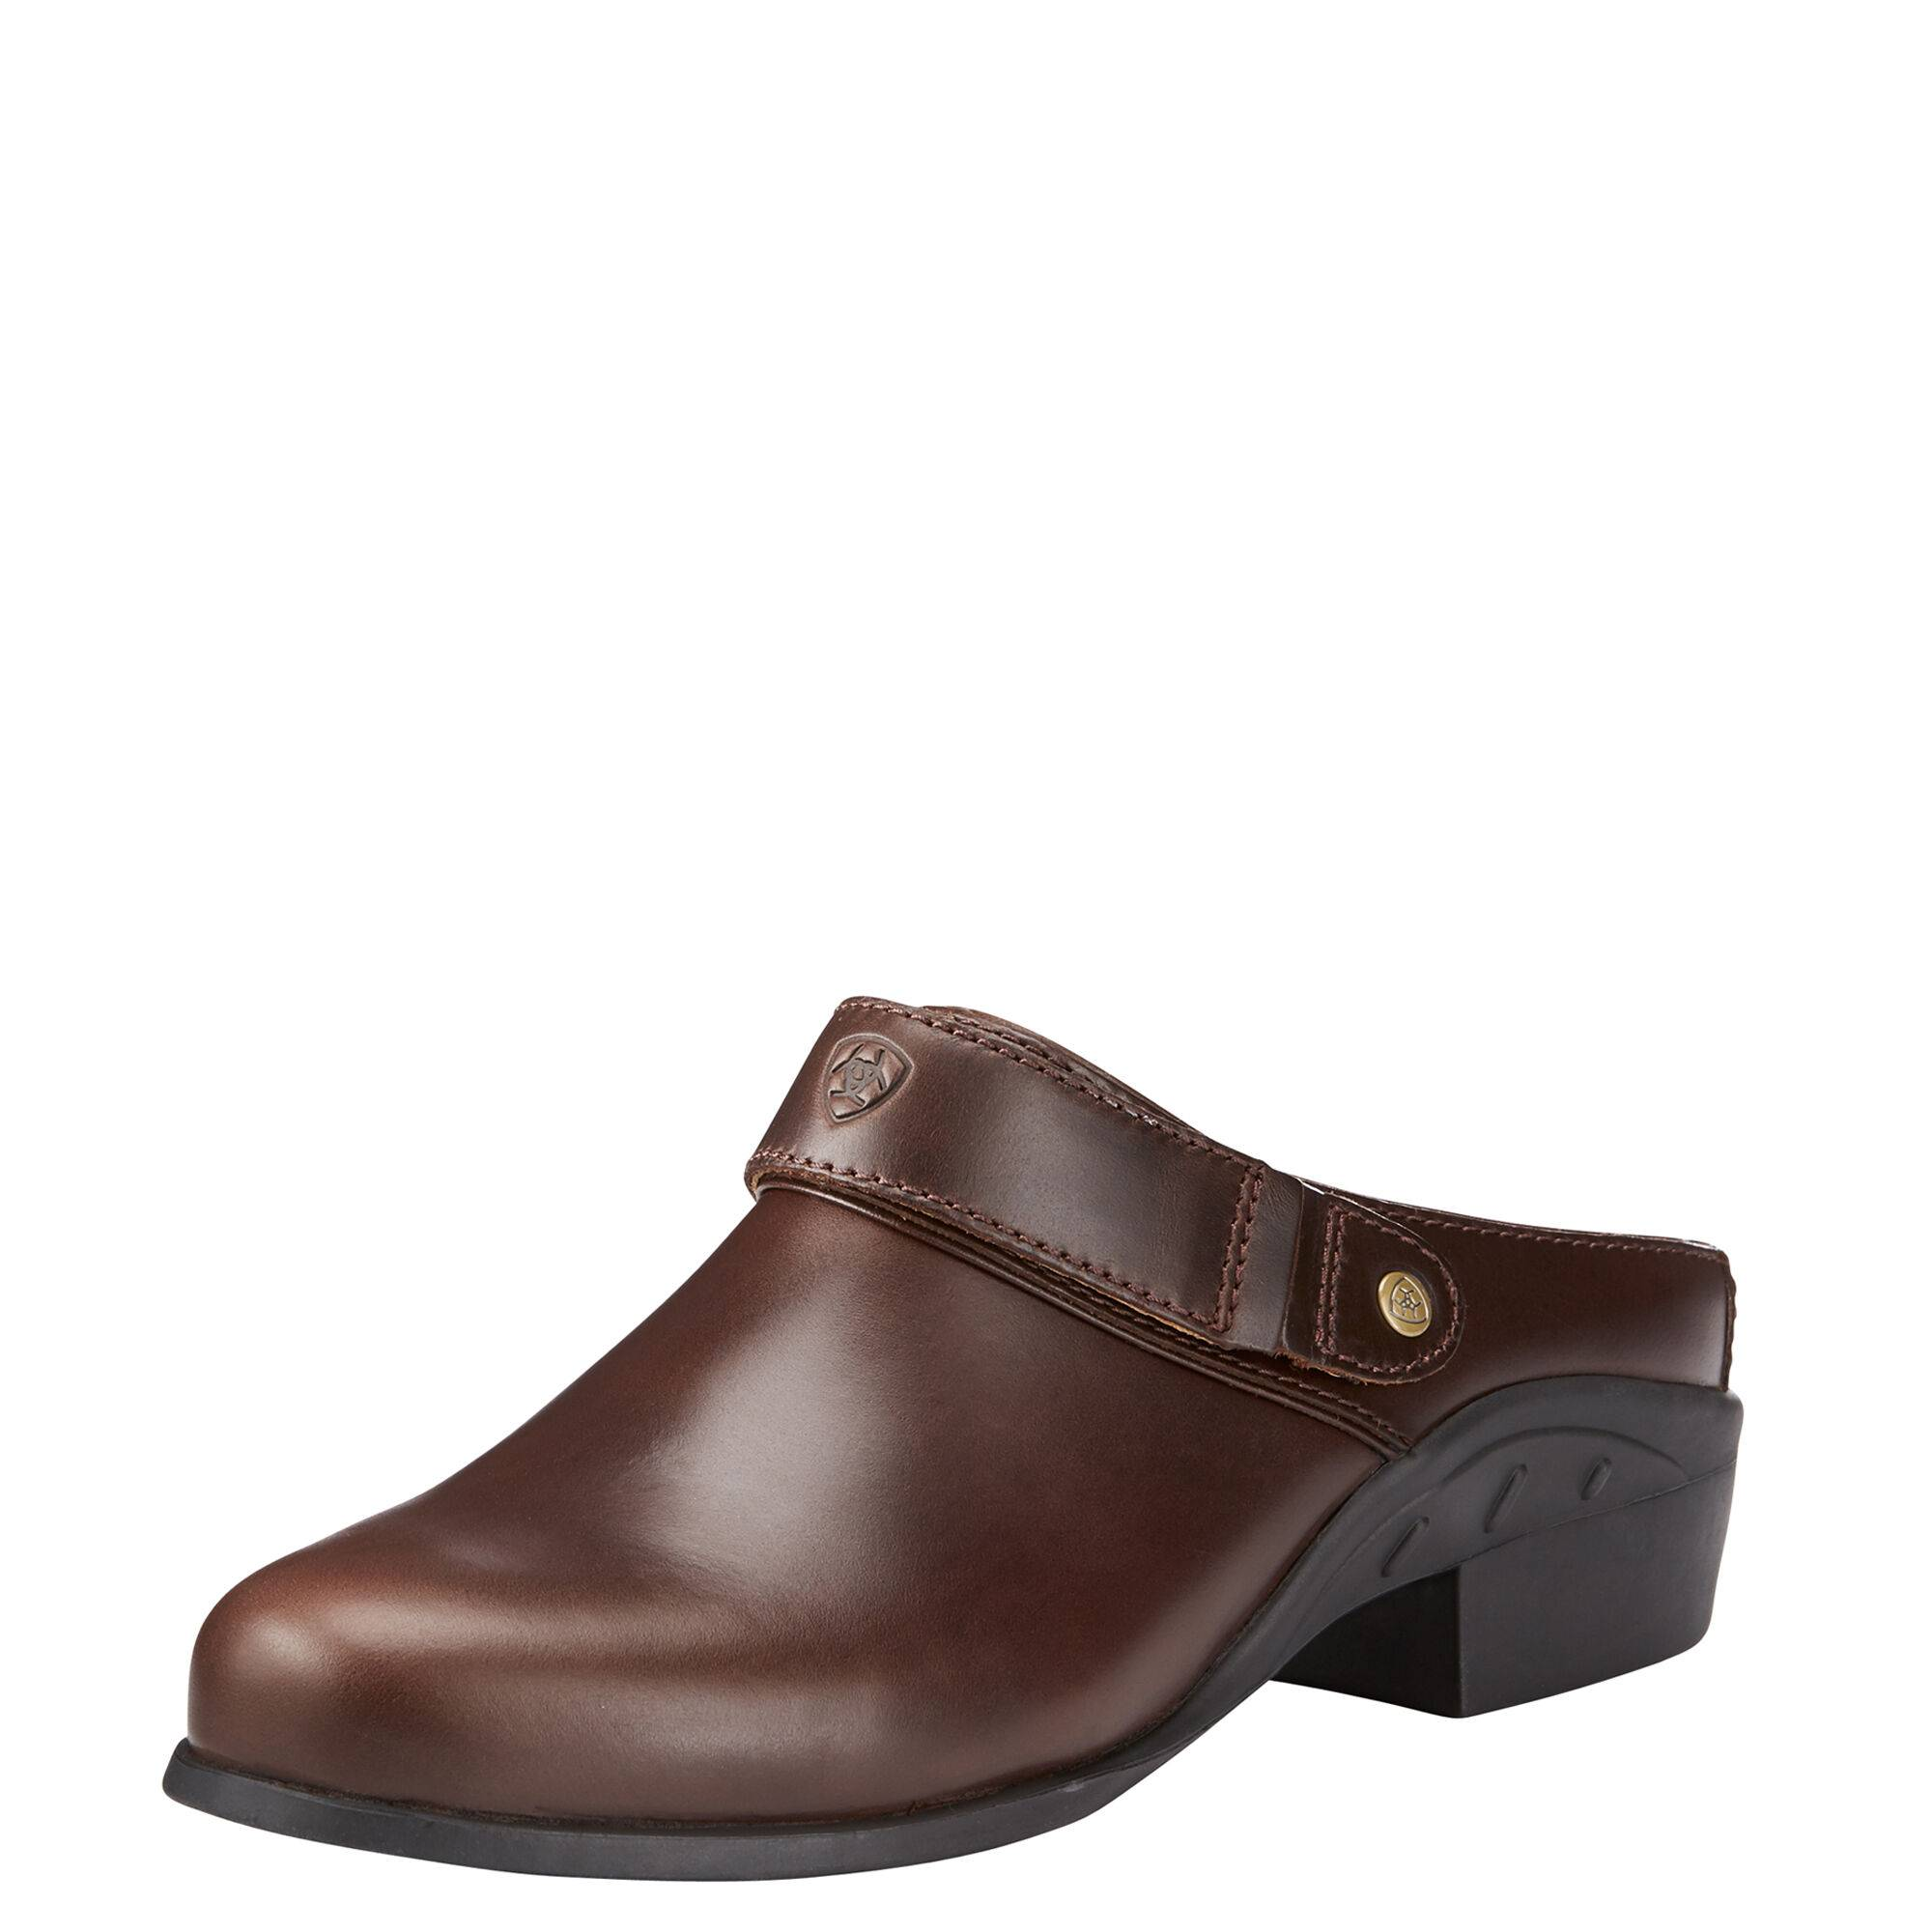 Ariat Women's Sport Mule in Waxed Chocolate Leather, Size 6.5 B / Medium by Ariat